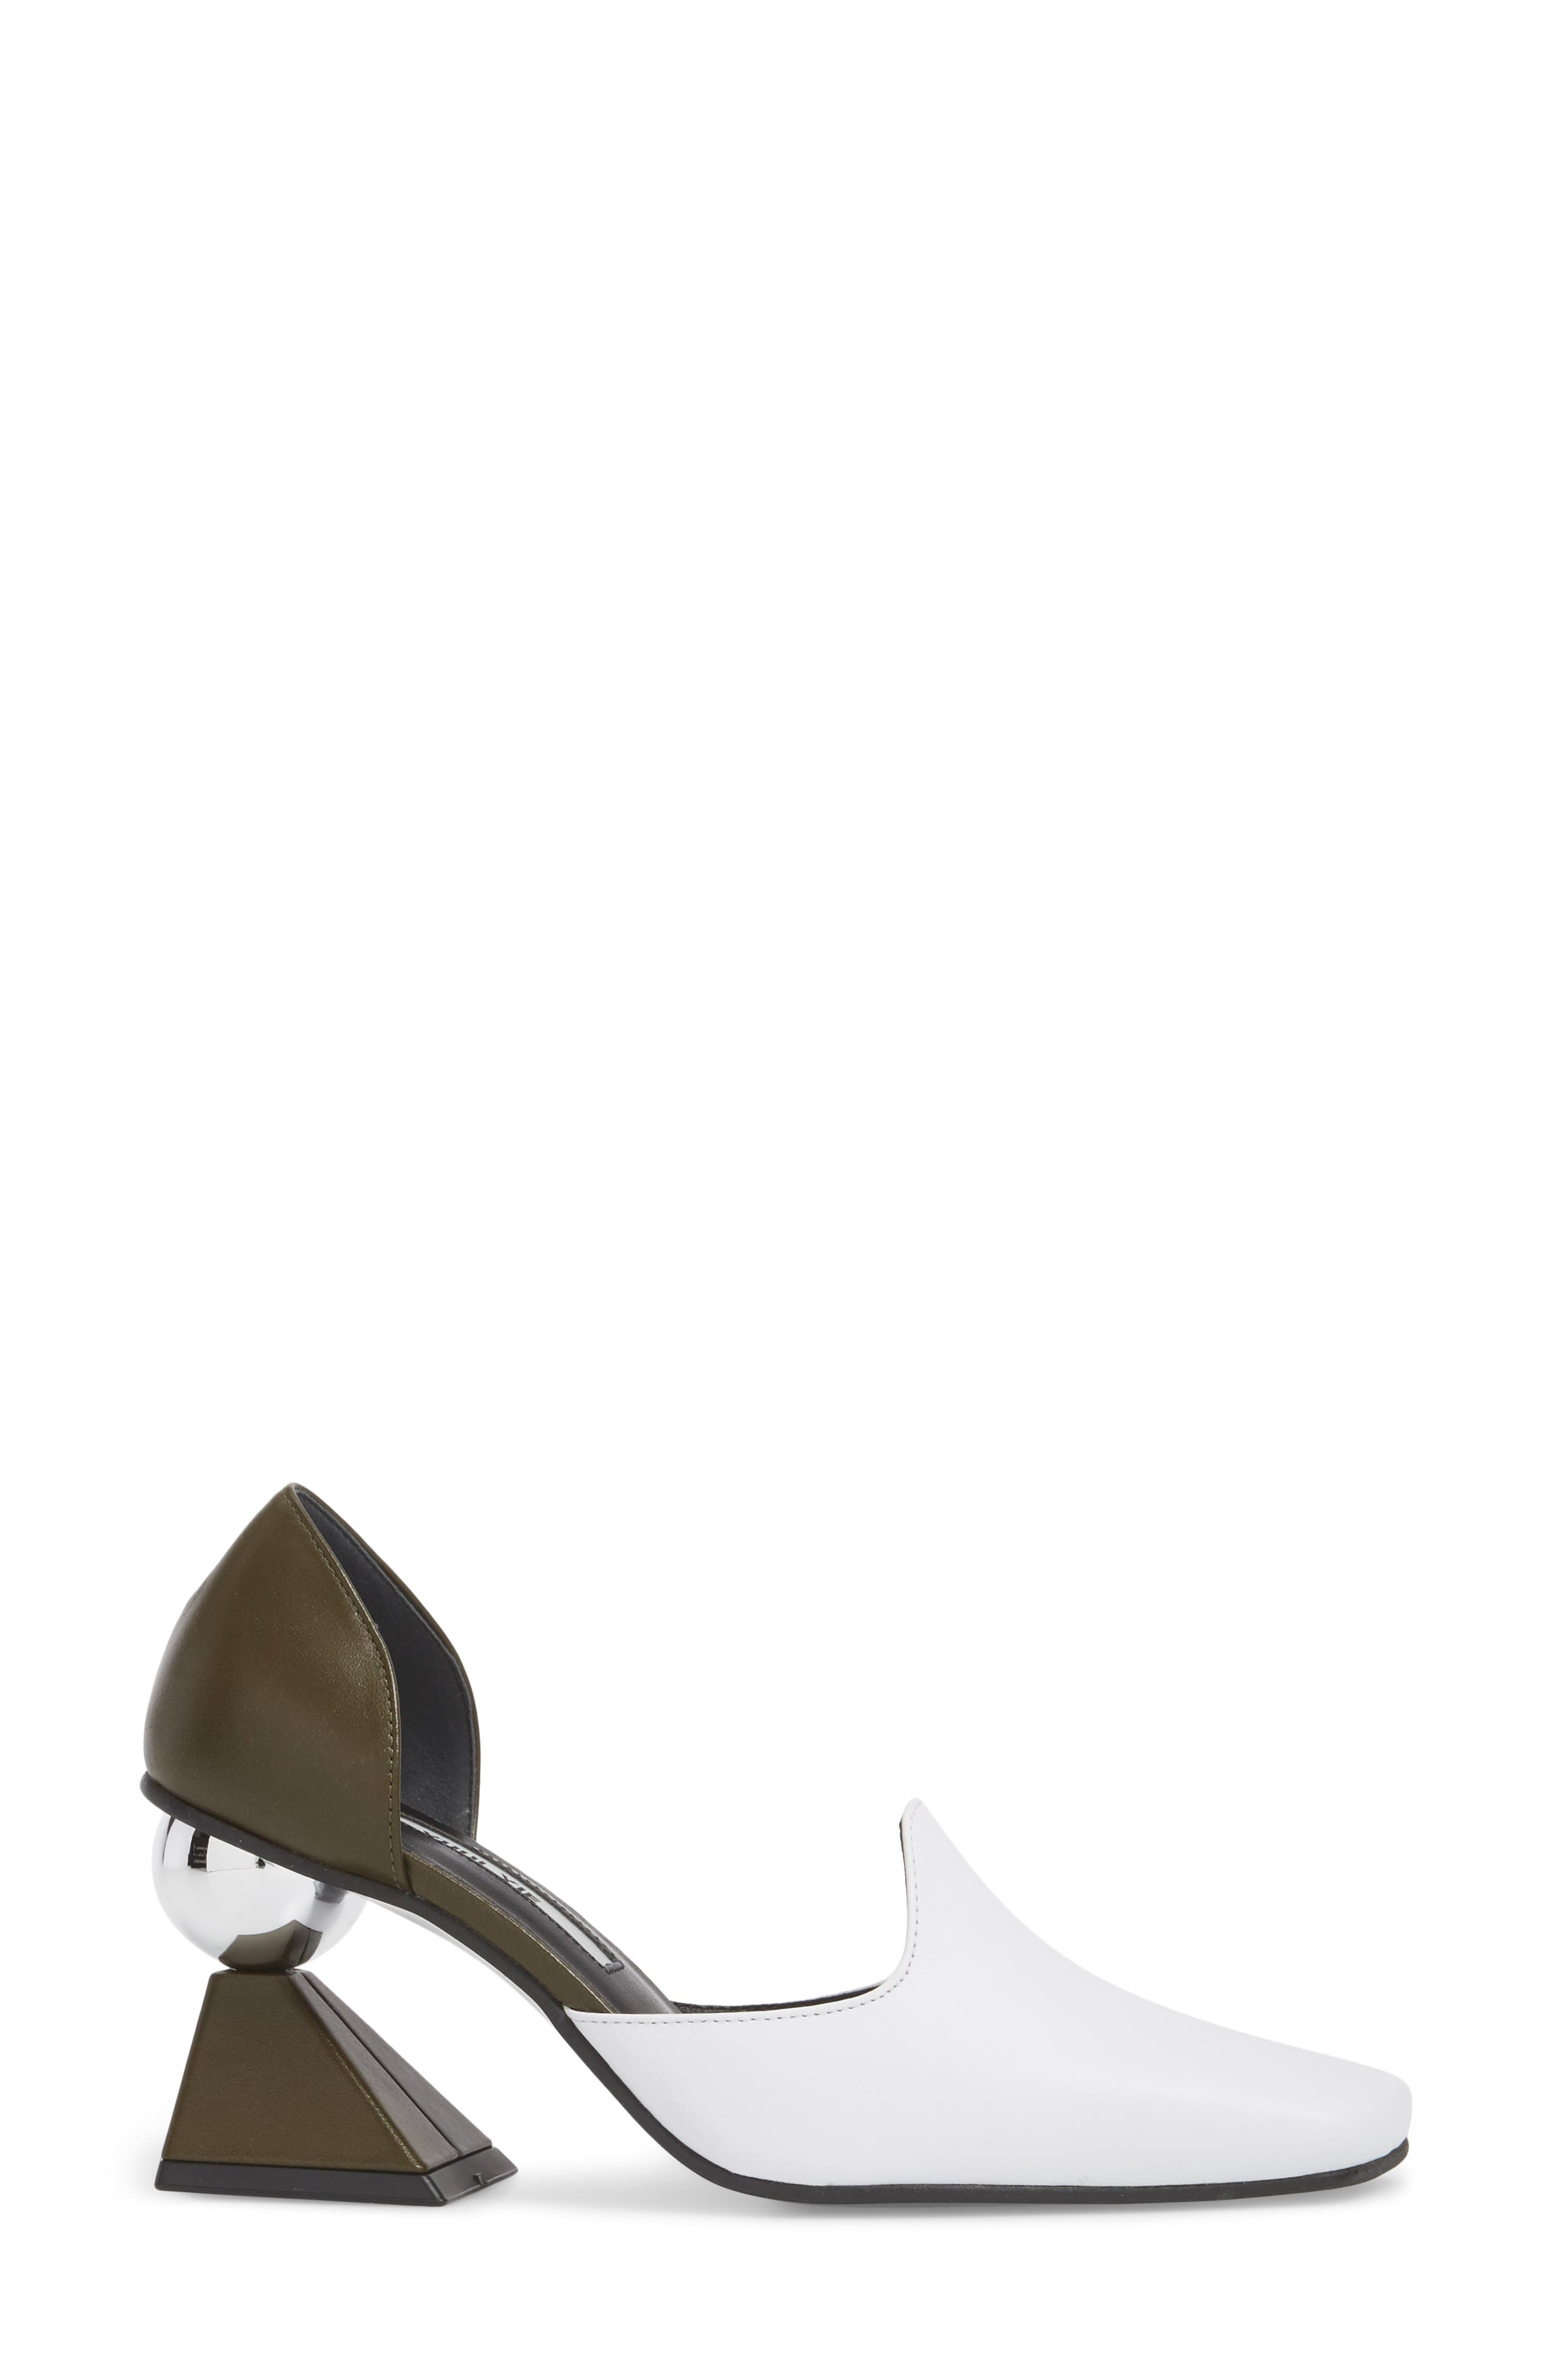 Statement Heel d'Orsay Pump,                             Alternate thumbnail 3, color,                             White/ Olive Green